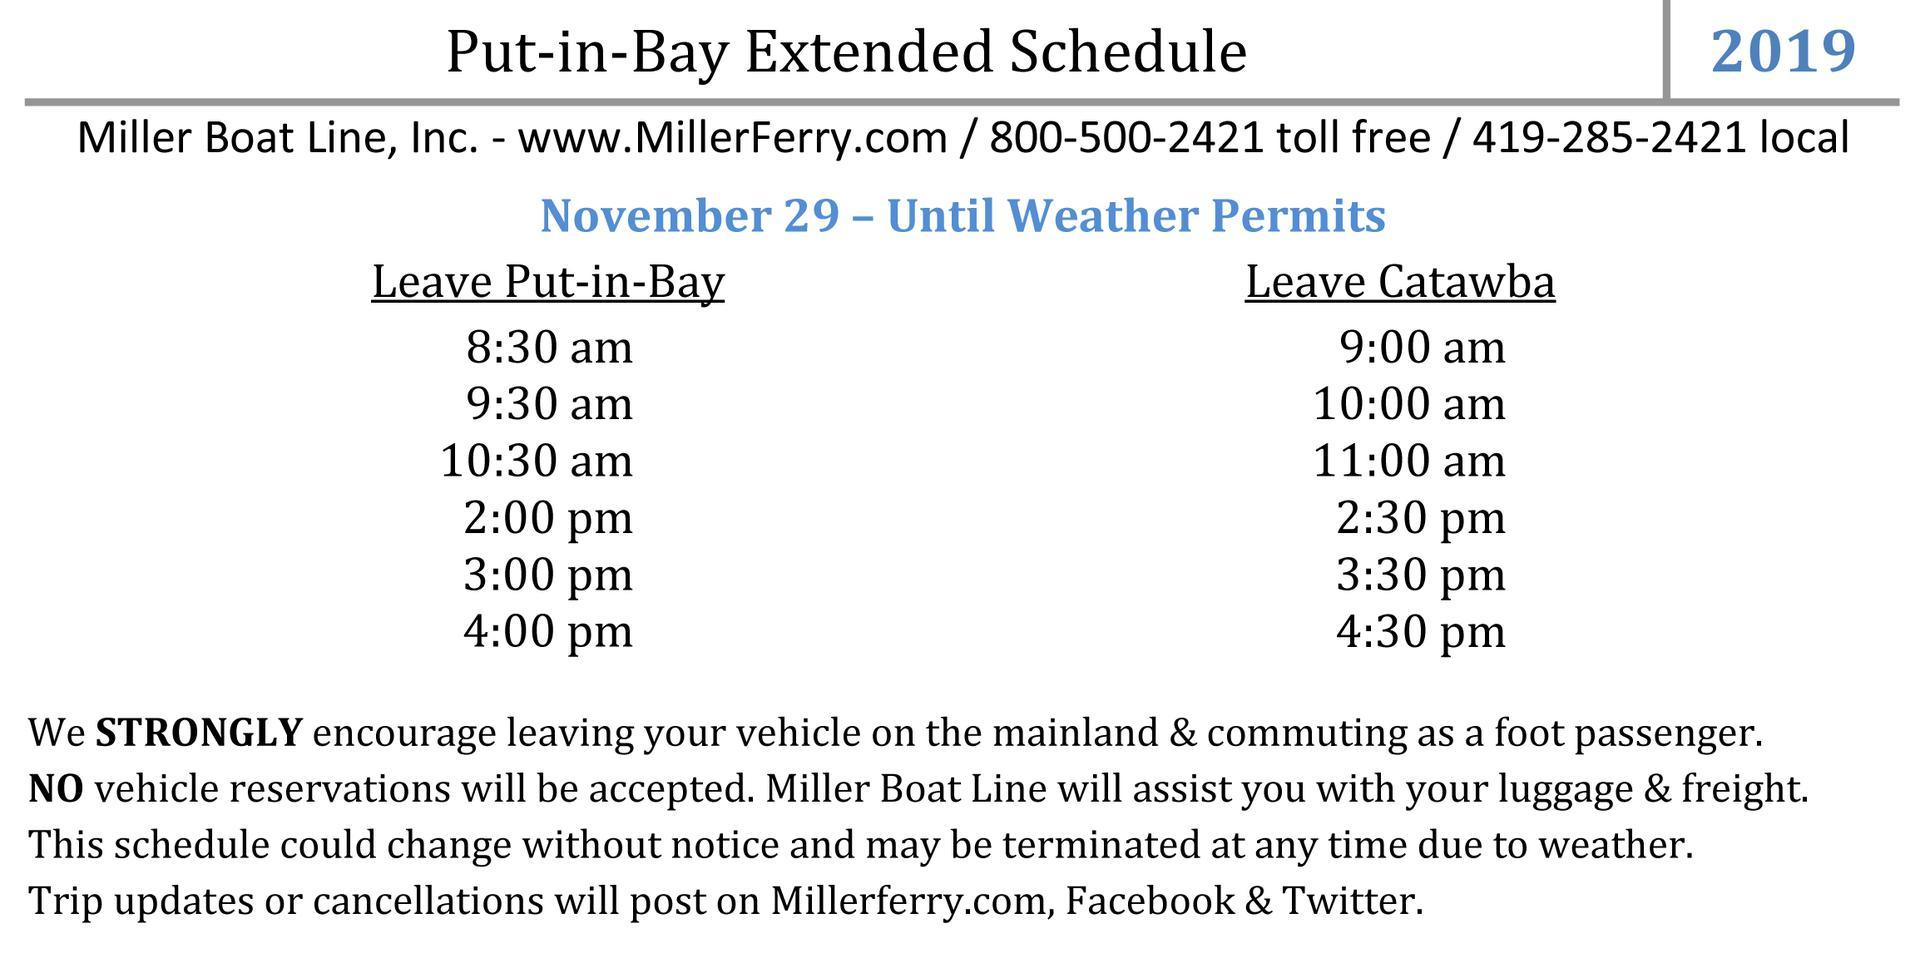 Miller Ferry 2019 Put-in-Bay Extended Schedule